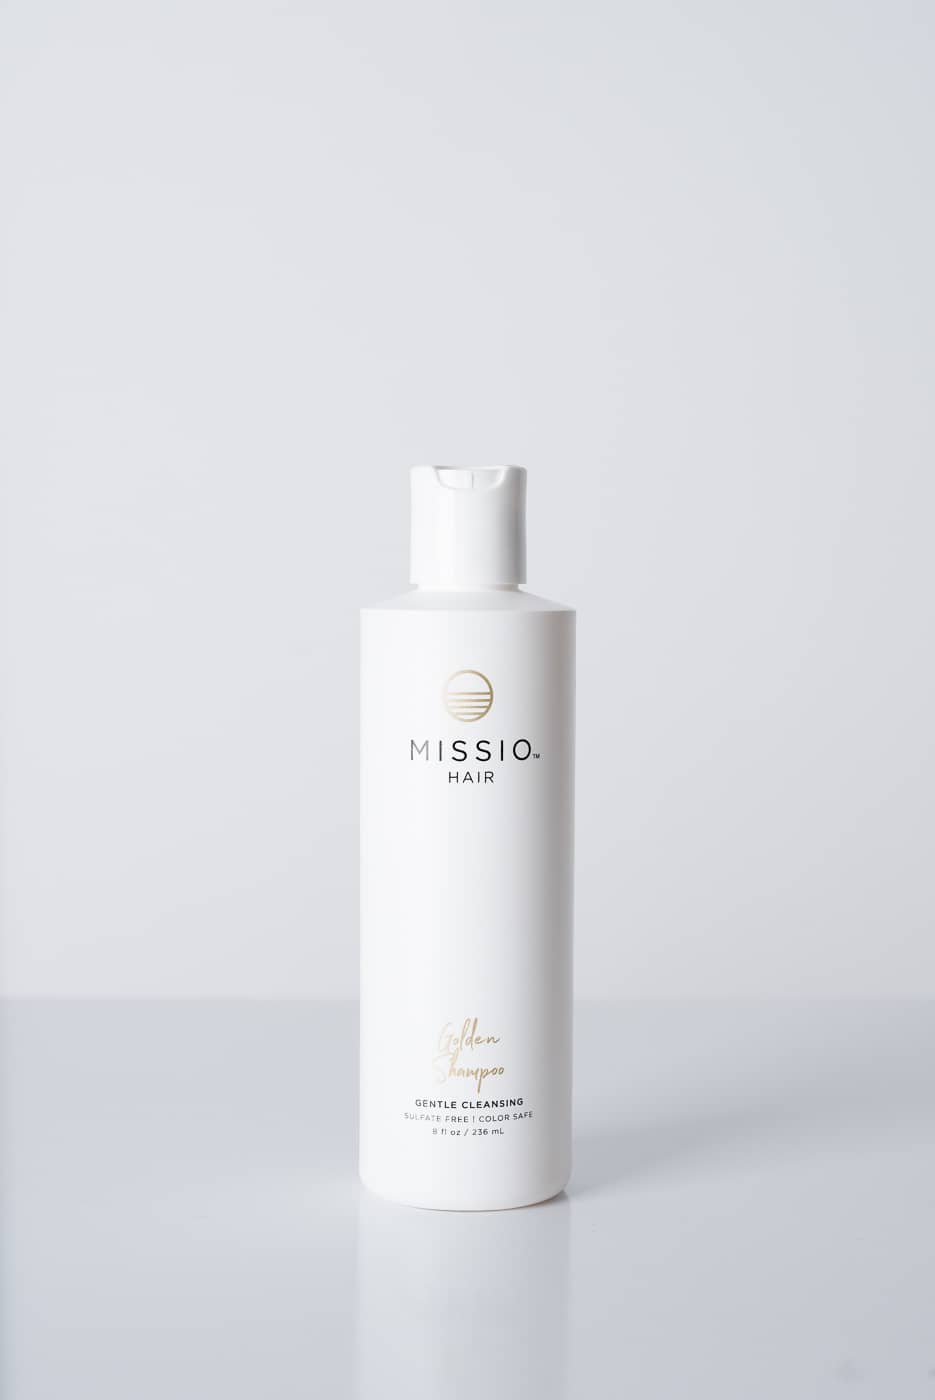 - GOLDEN SHAMPOO - GENTLE CLEANSING